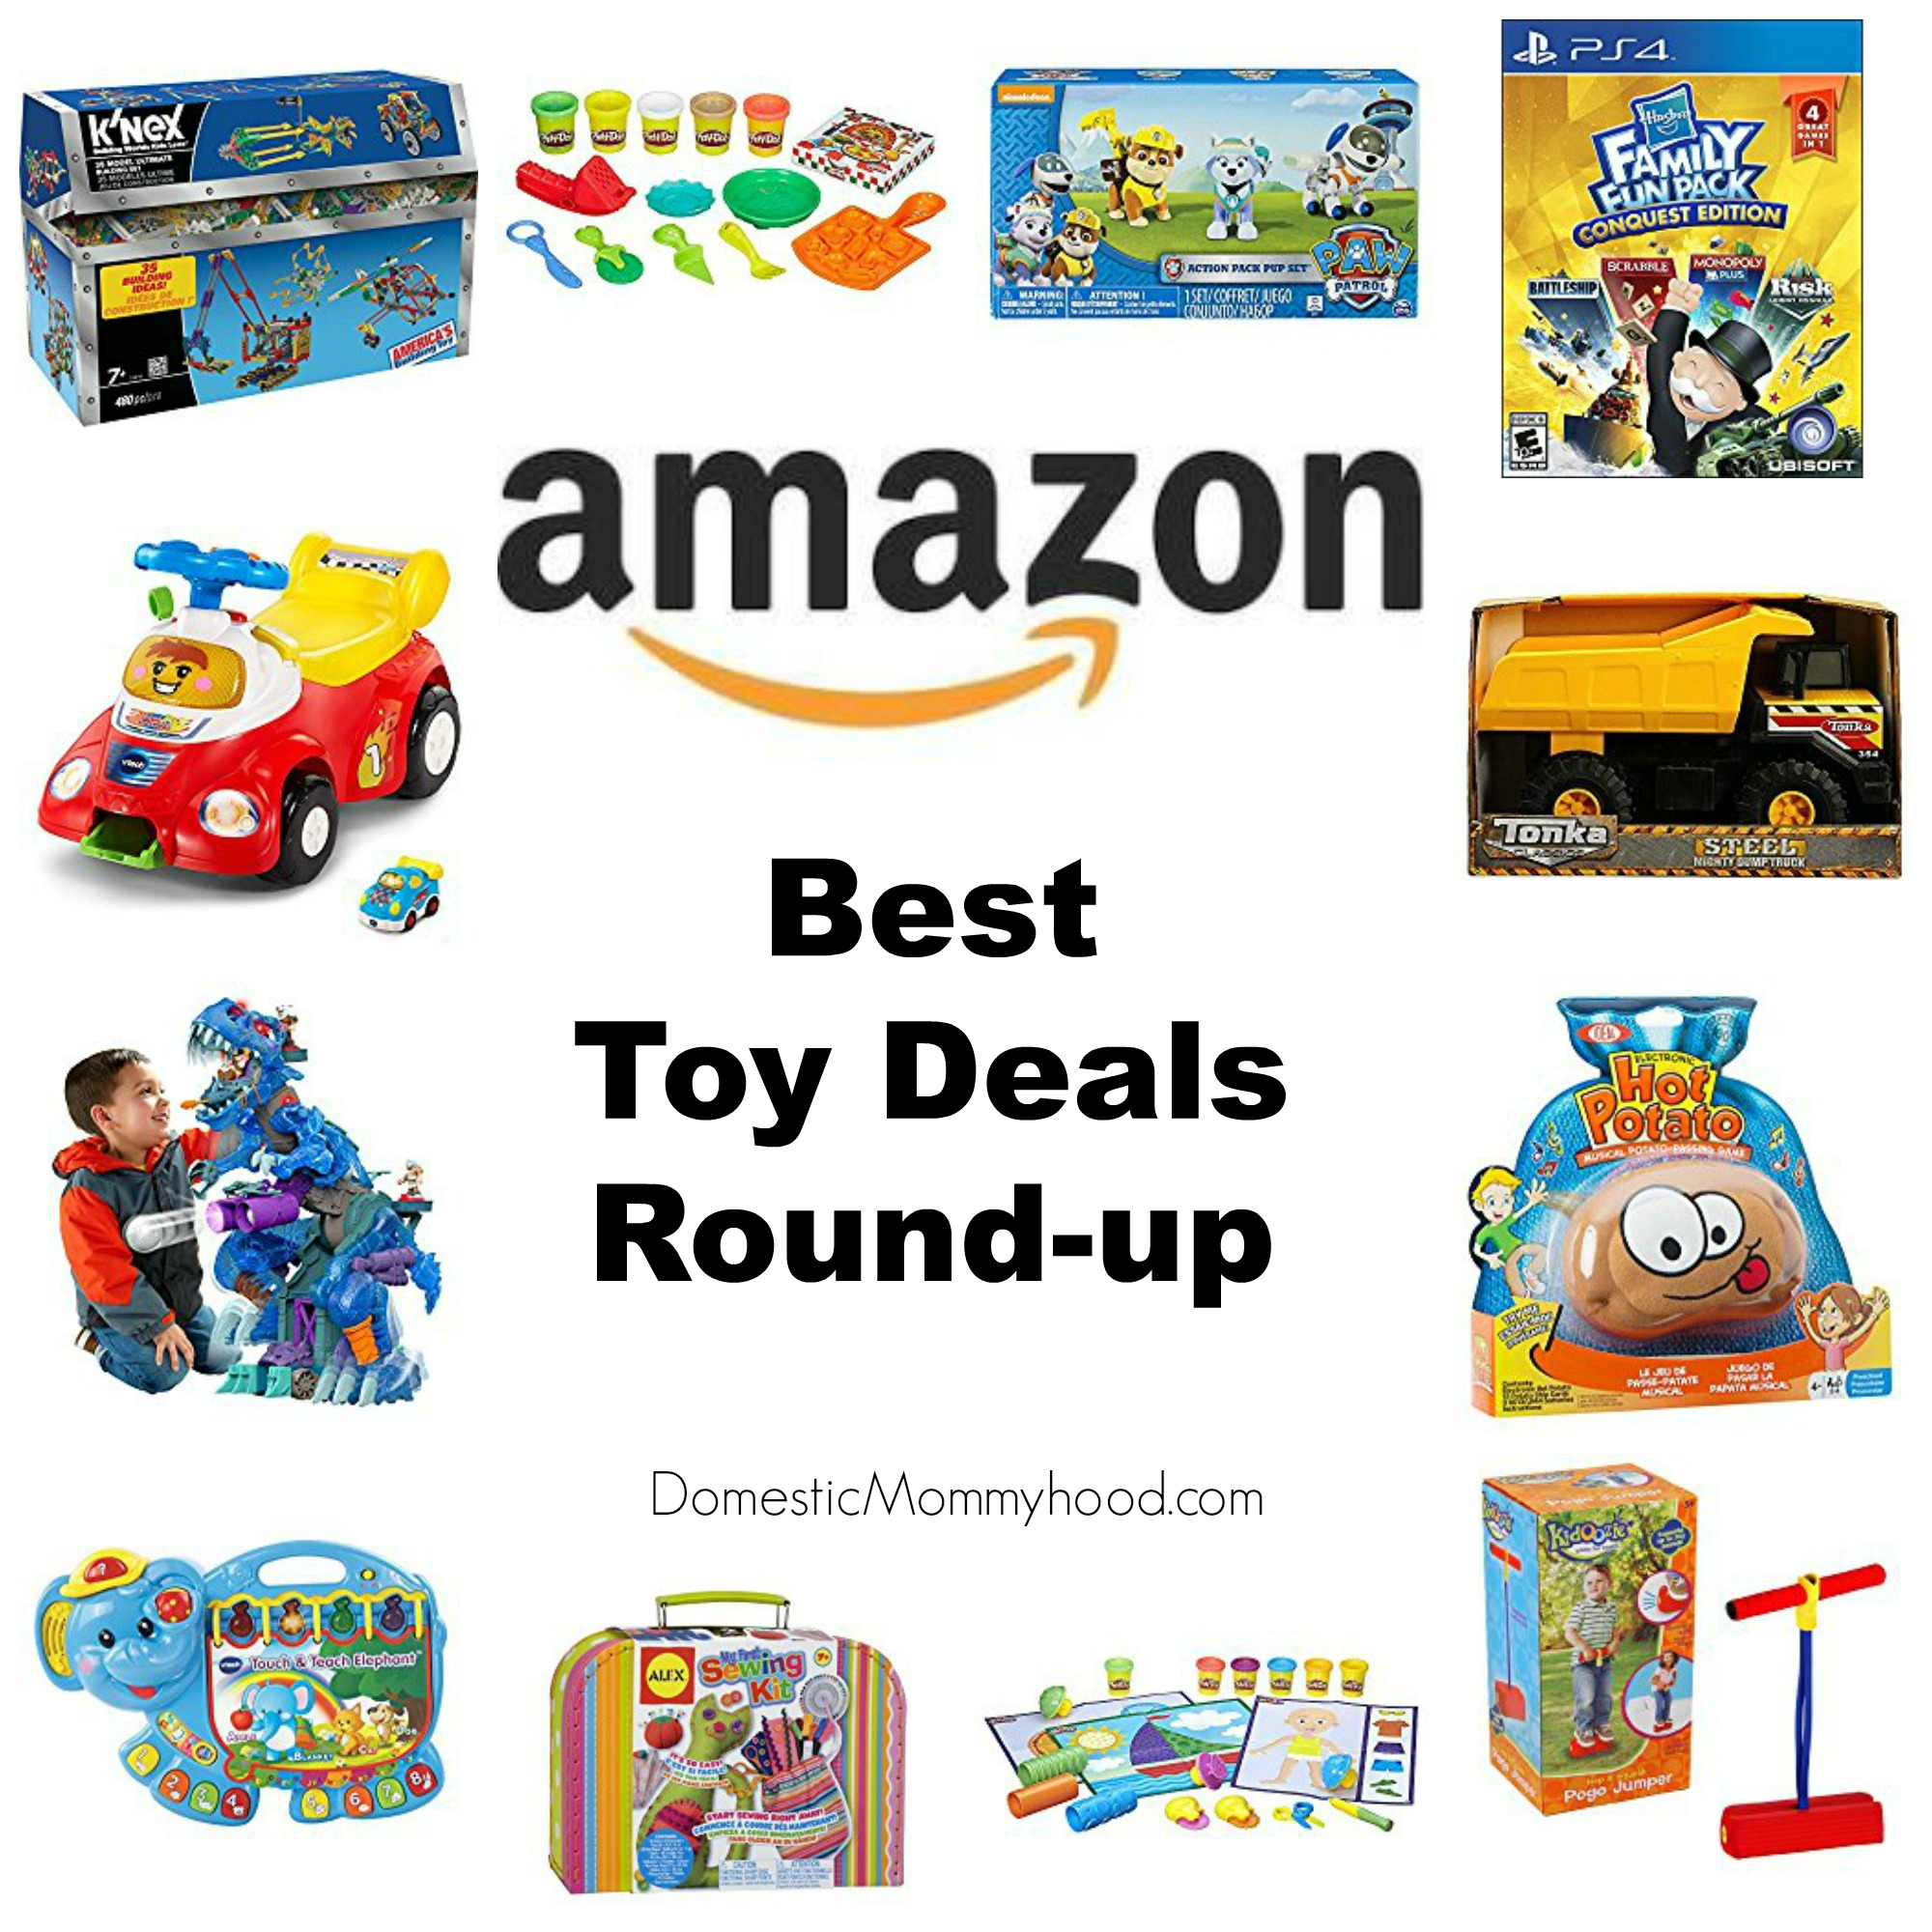 amazon best toy deals round up